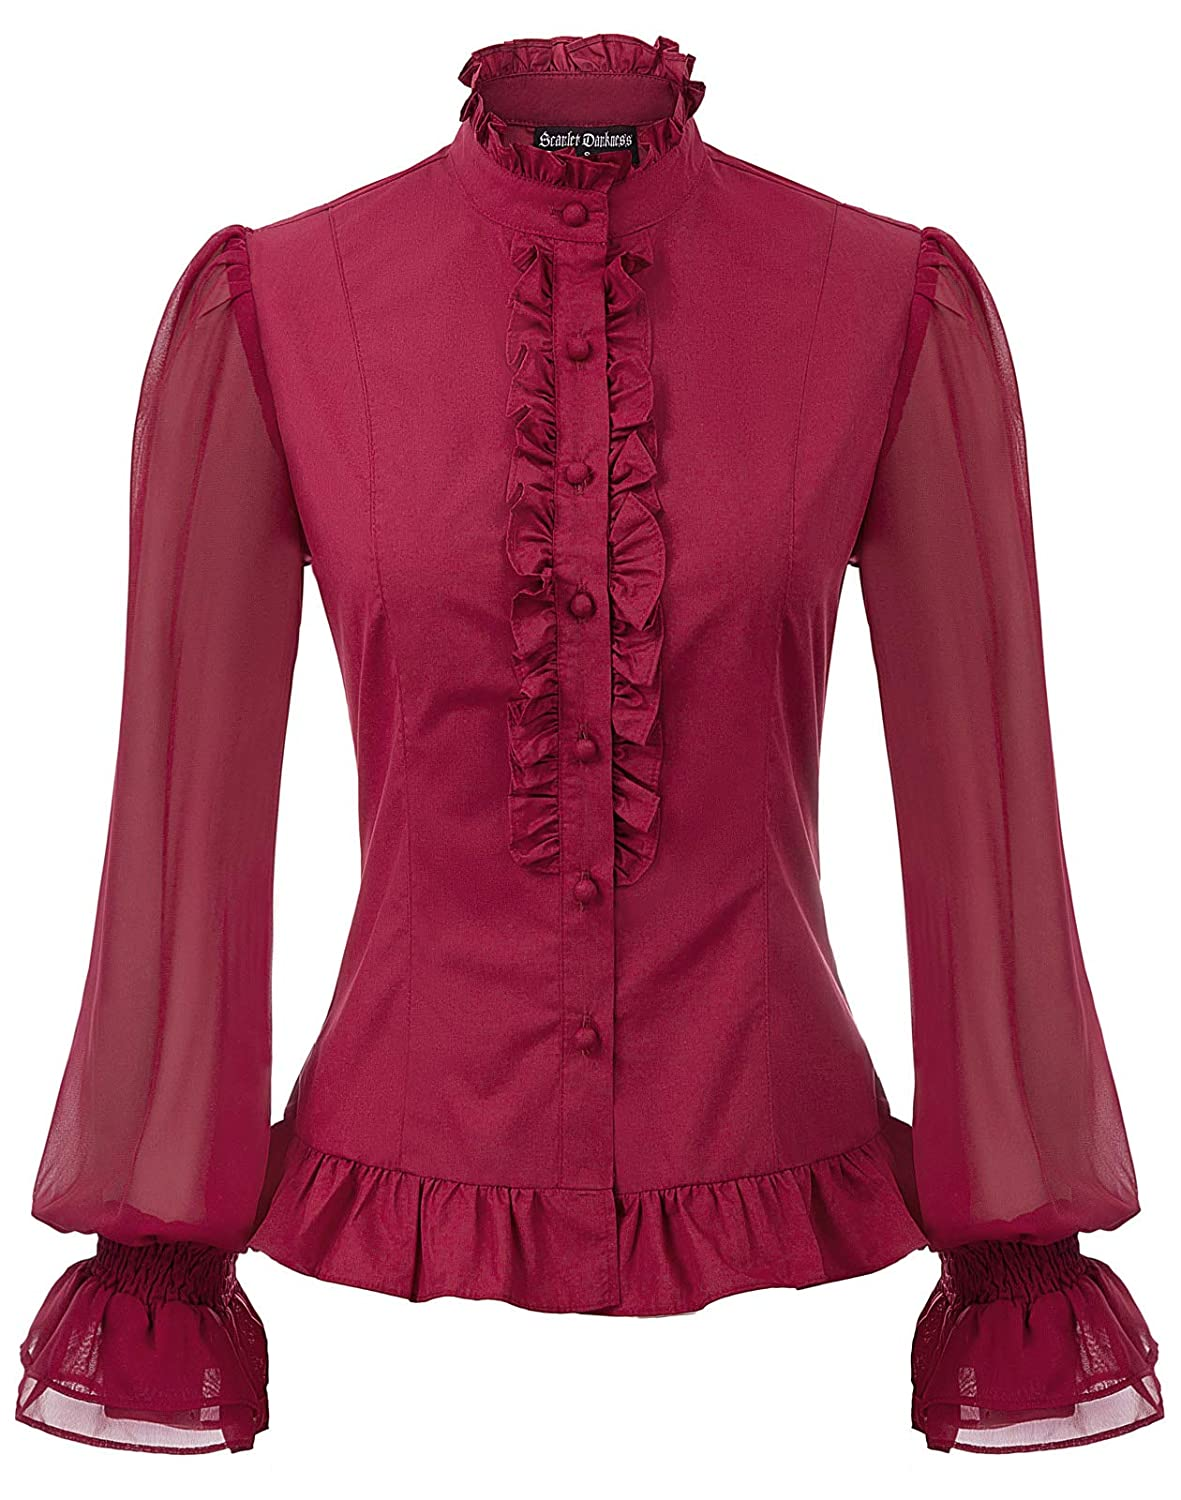 Victorian Blouses, Tops, Shirts, Sweaters Womens Victorian Blouse Gothic Shirts Ruffle Stand Collor Sheer Sleeve Tops $26.99 AT vintagedancer.com